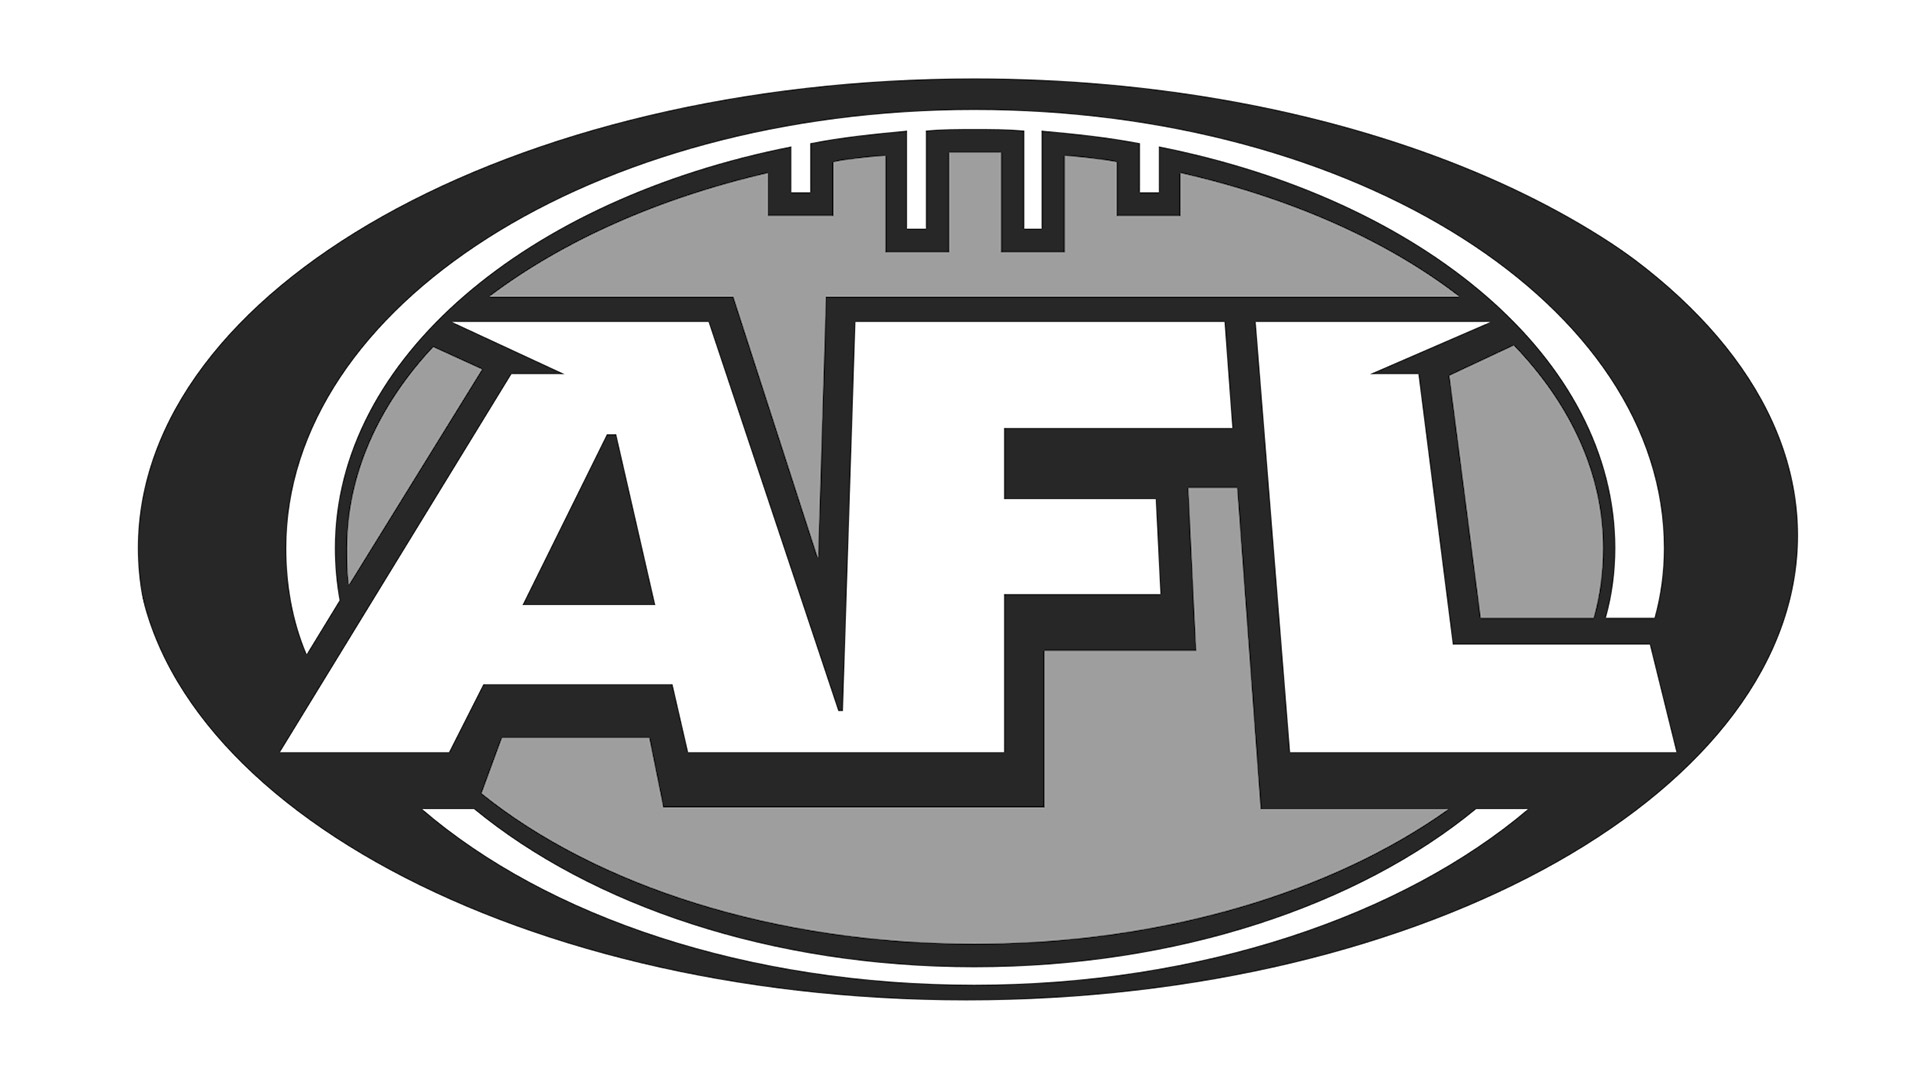 Meaning AFL logo and symbol.